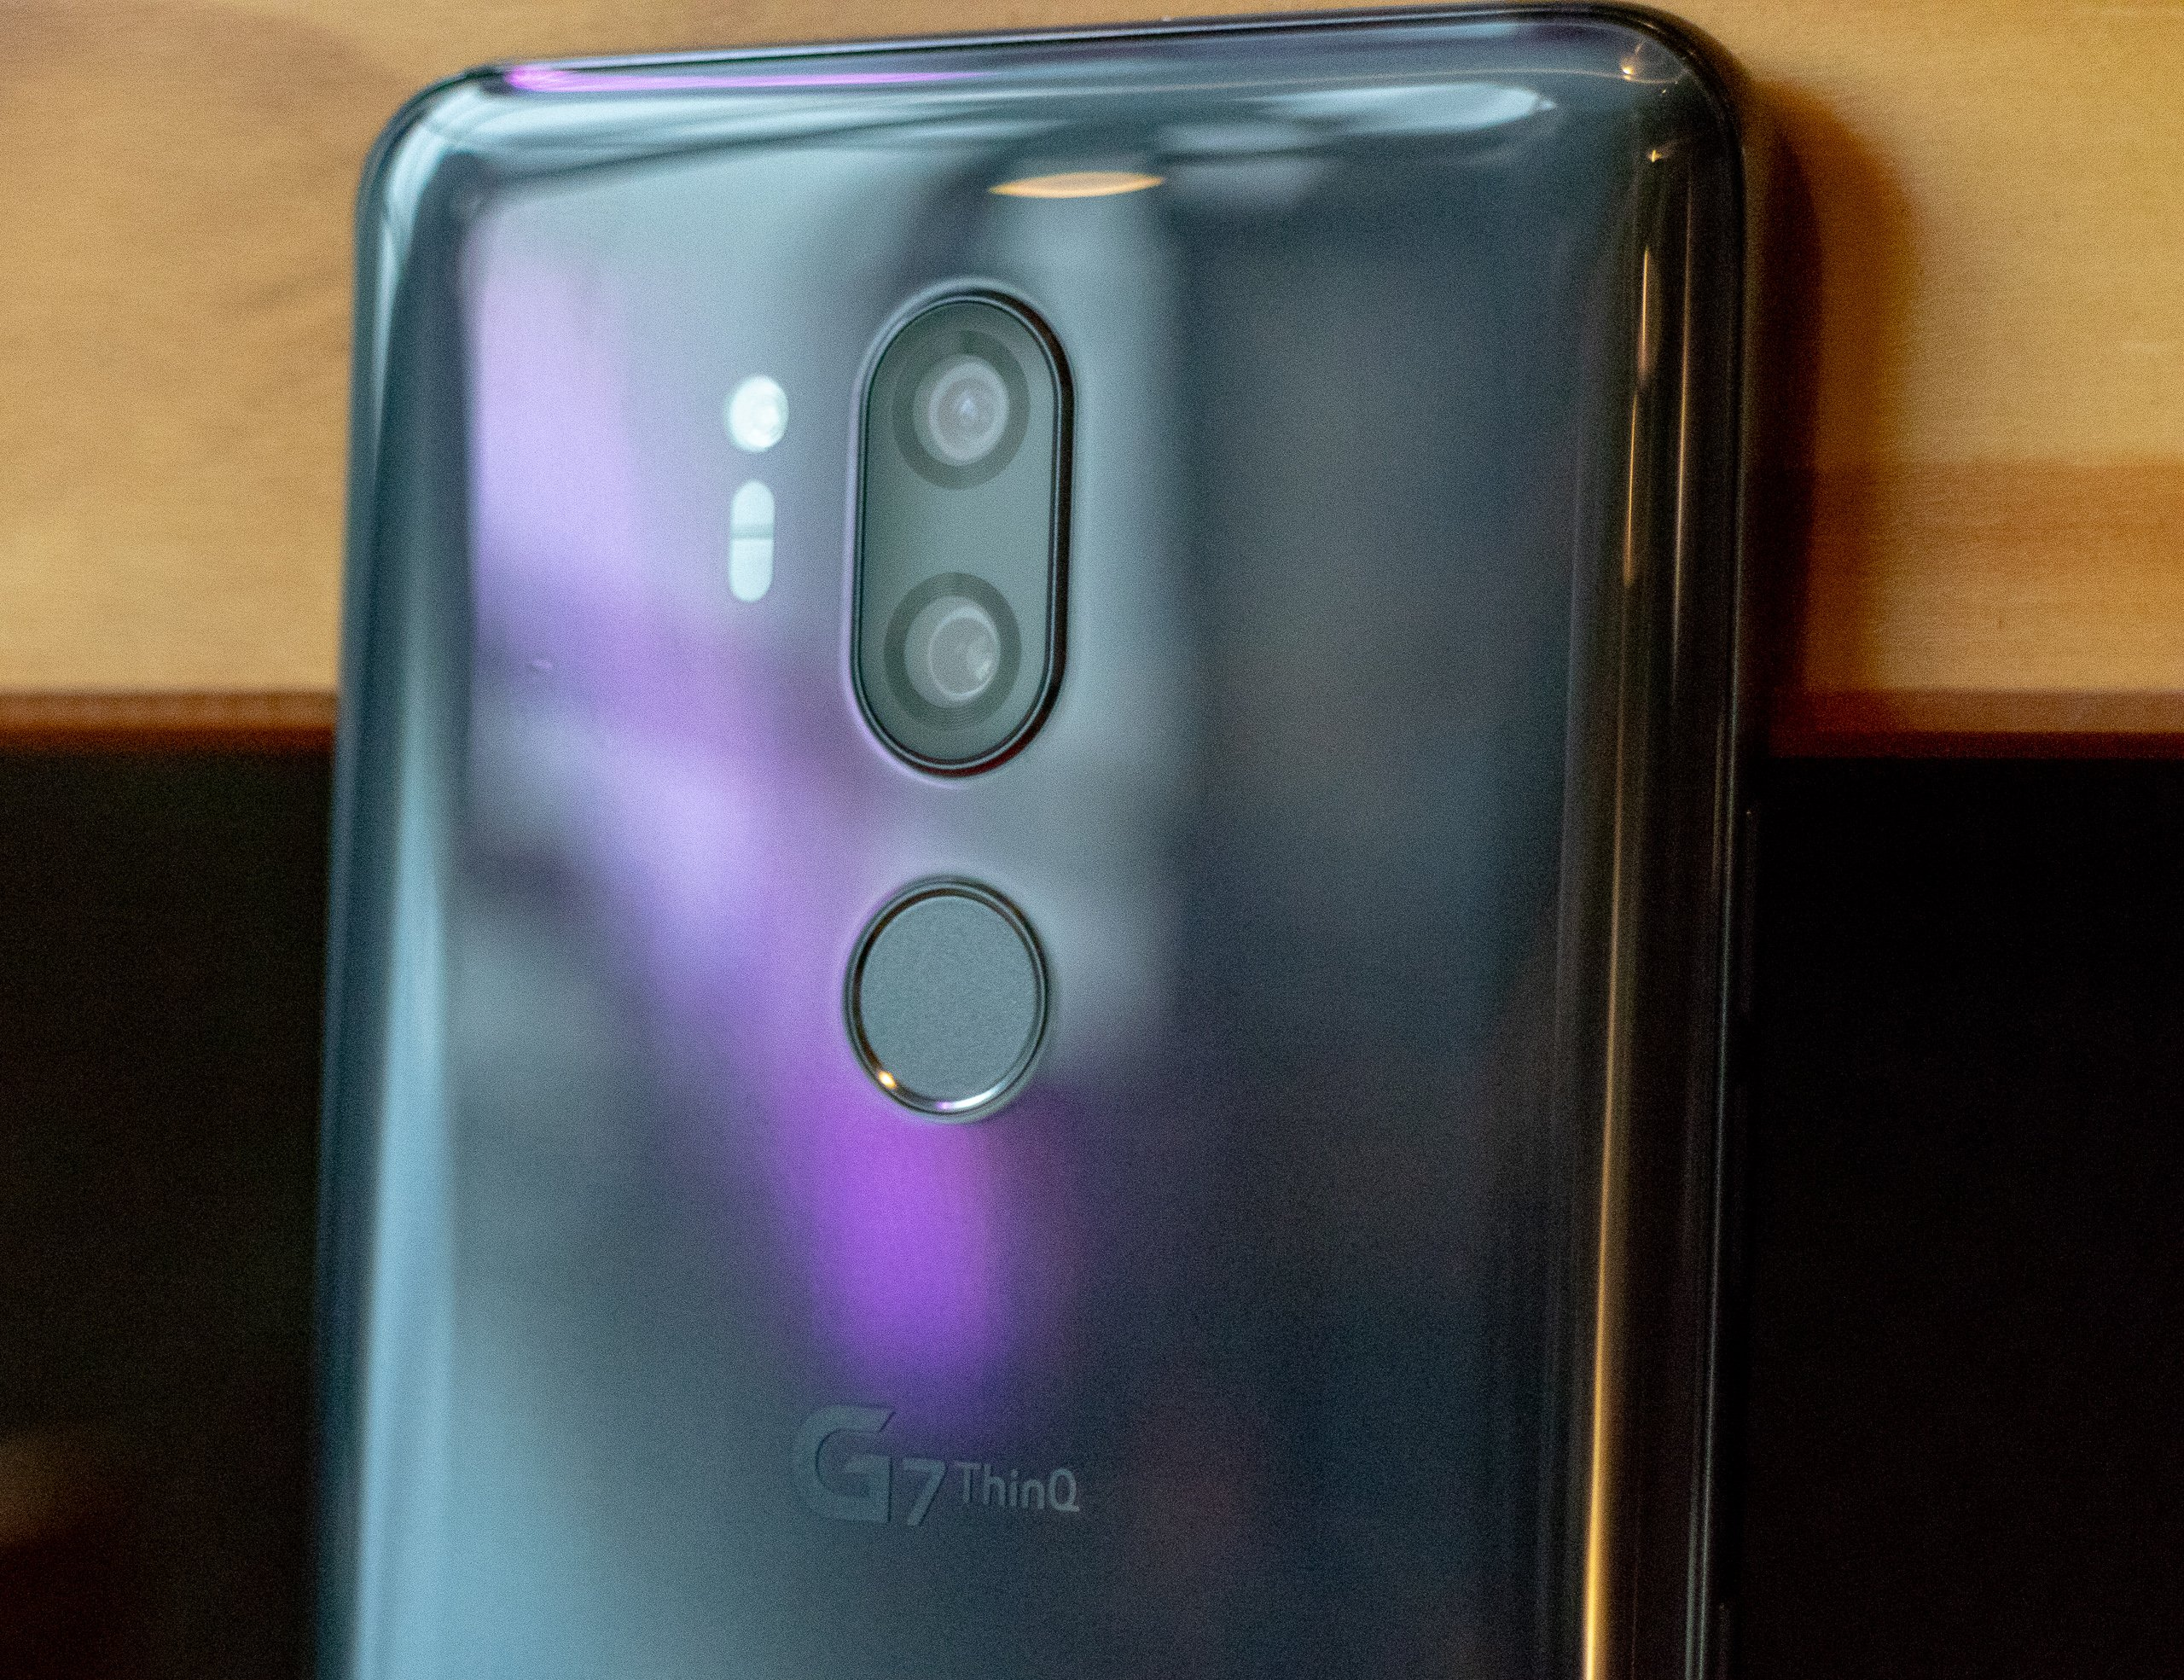 LG G7 camera review: wide-angle alone isn't enough | AndroidPIT